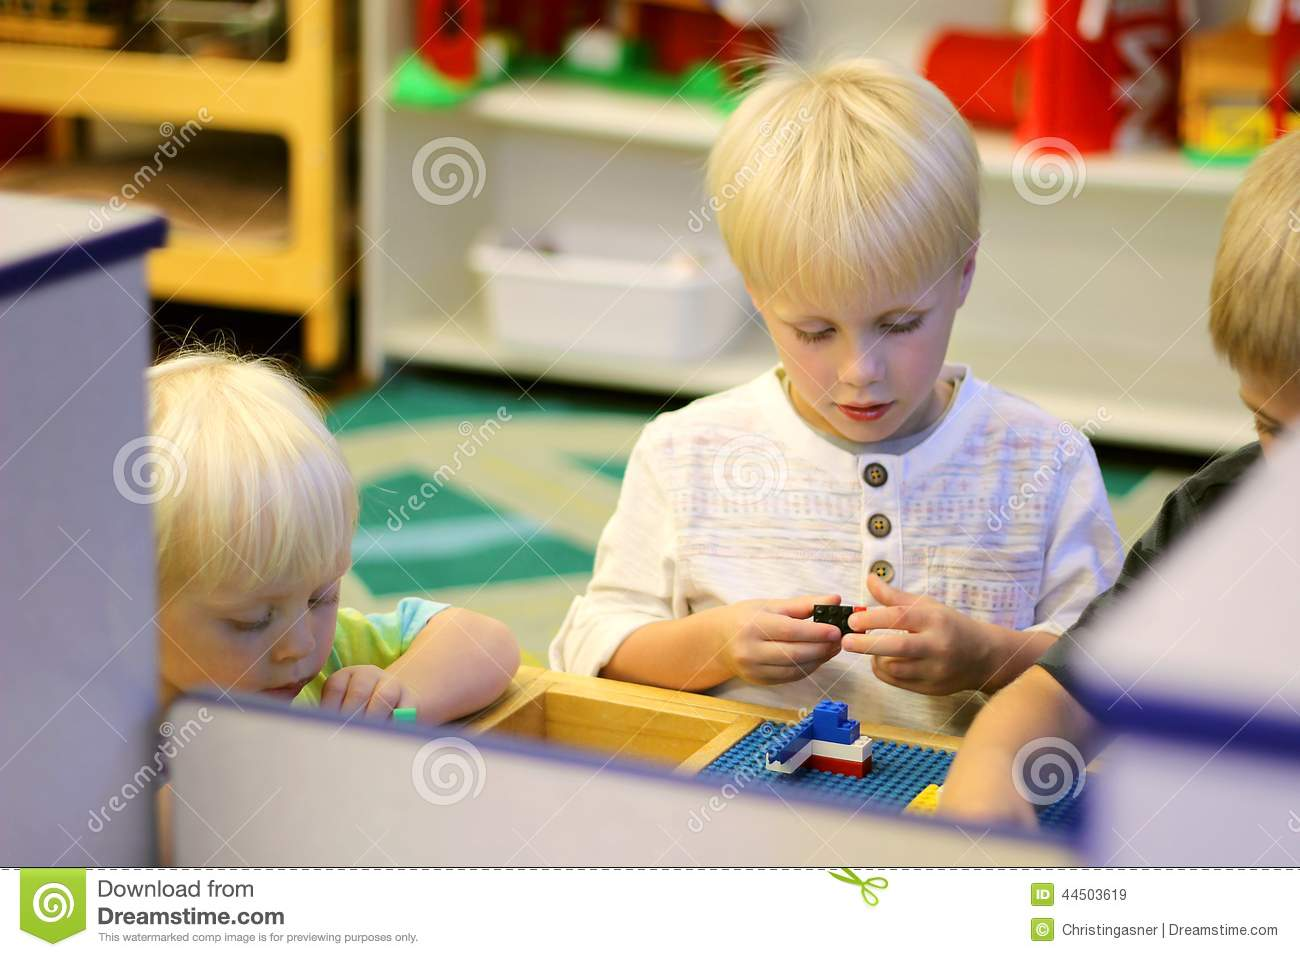 young preschool children playing building blocks in school class stock image image of working. Black Bedroom Furniture Sets. Home Design Ideas